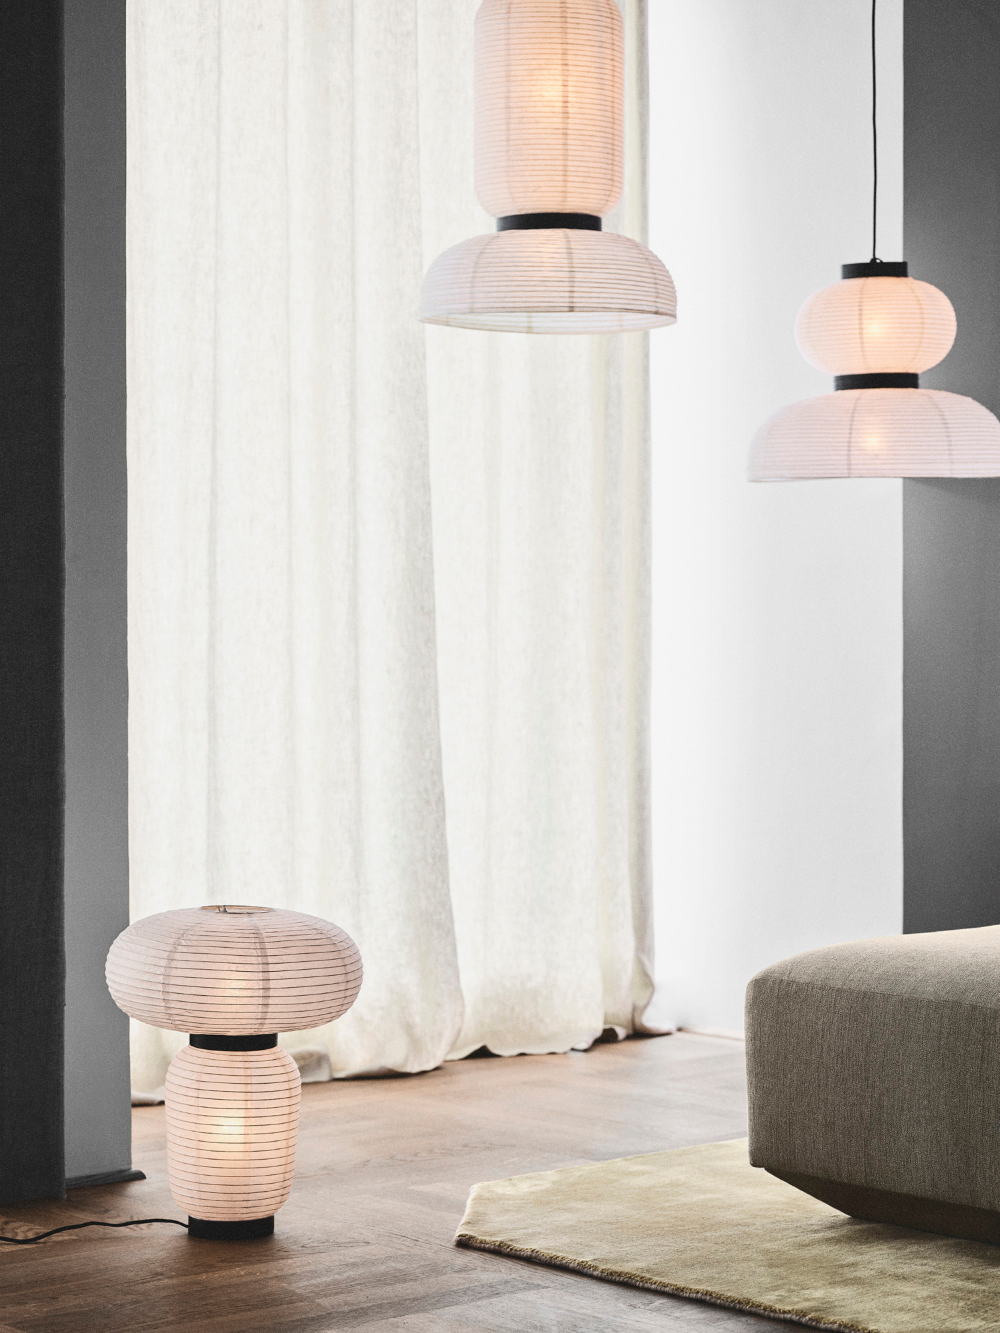 Formakami Jh3 By Jaime Hayon For Tradition In 2020 Lamps Living Room Lamp Paper Light